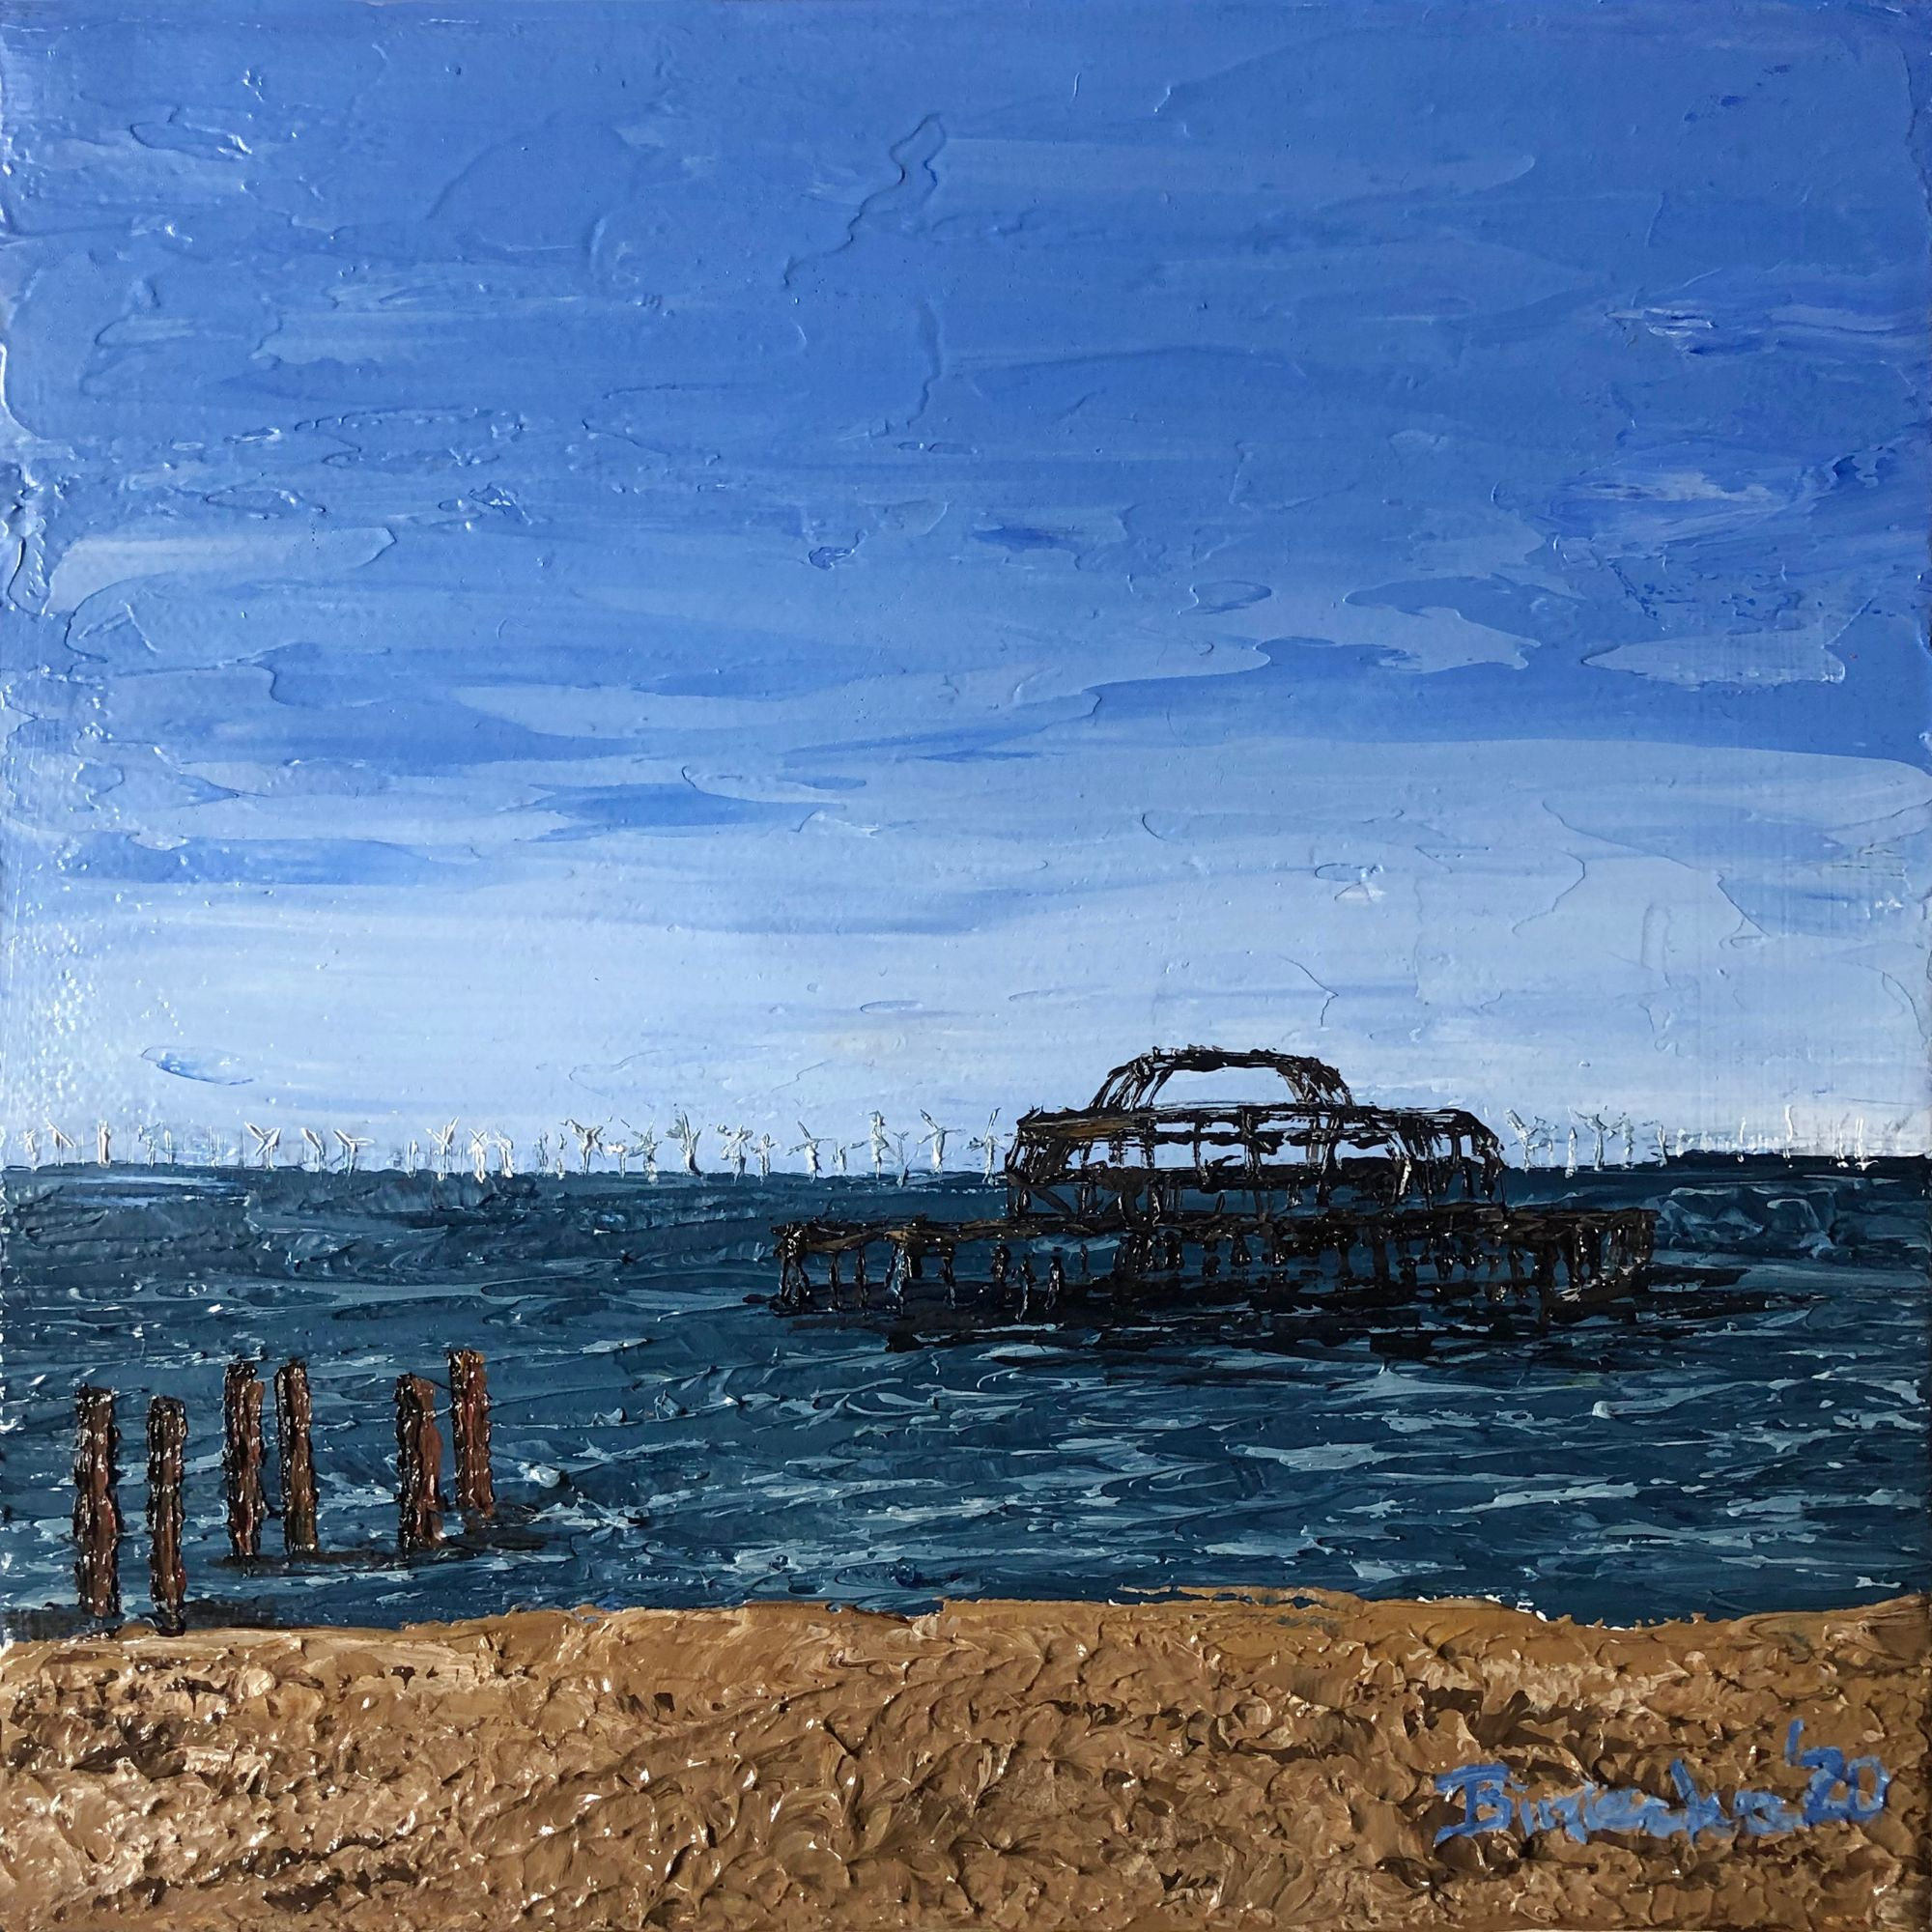 Seascape painting of the West Pier in Brighton